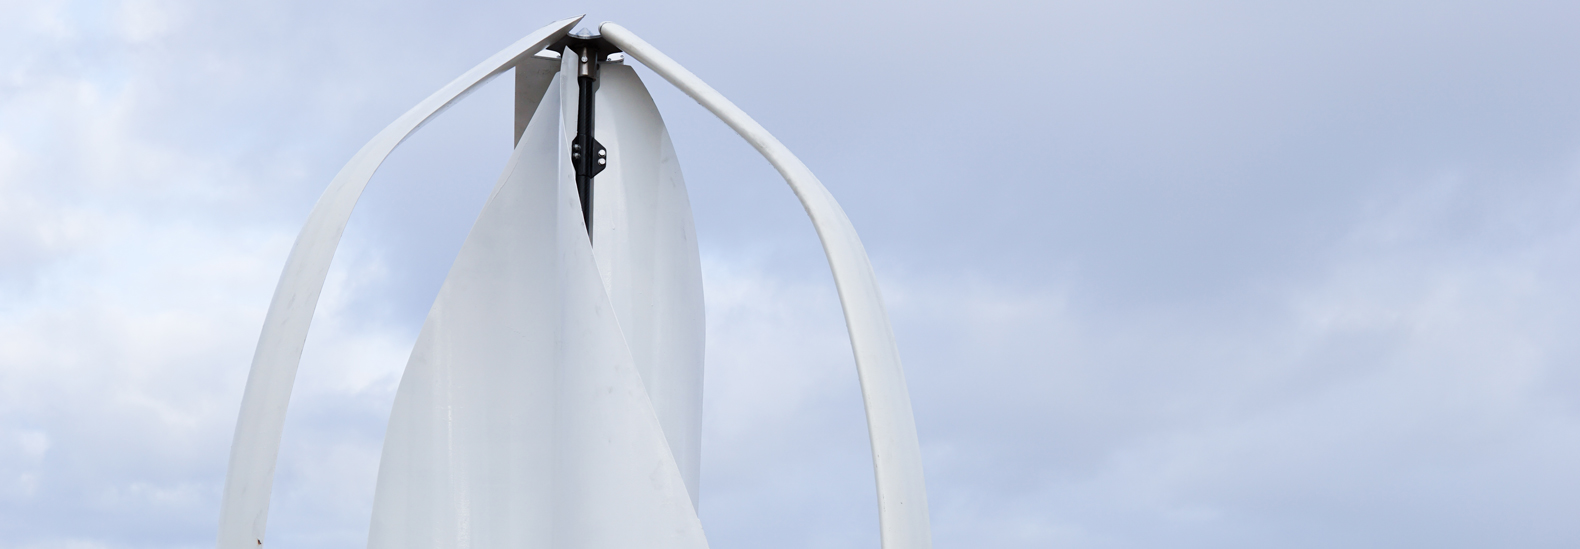 IceWind launches residential wind turbines in the US